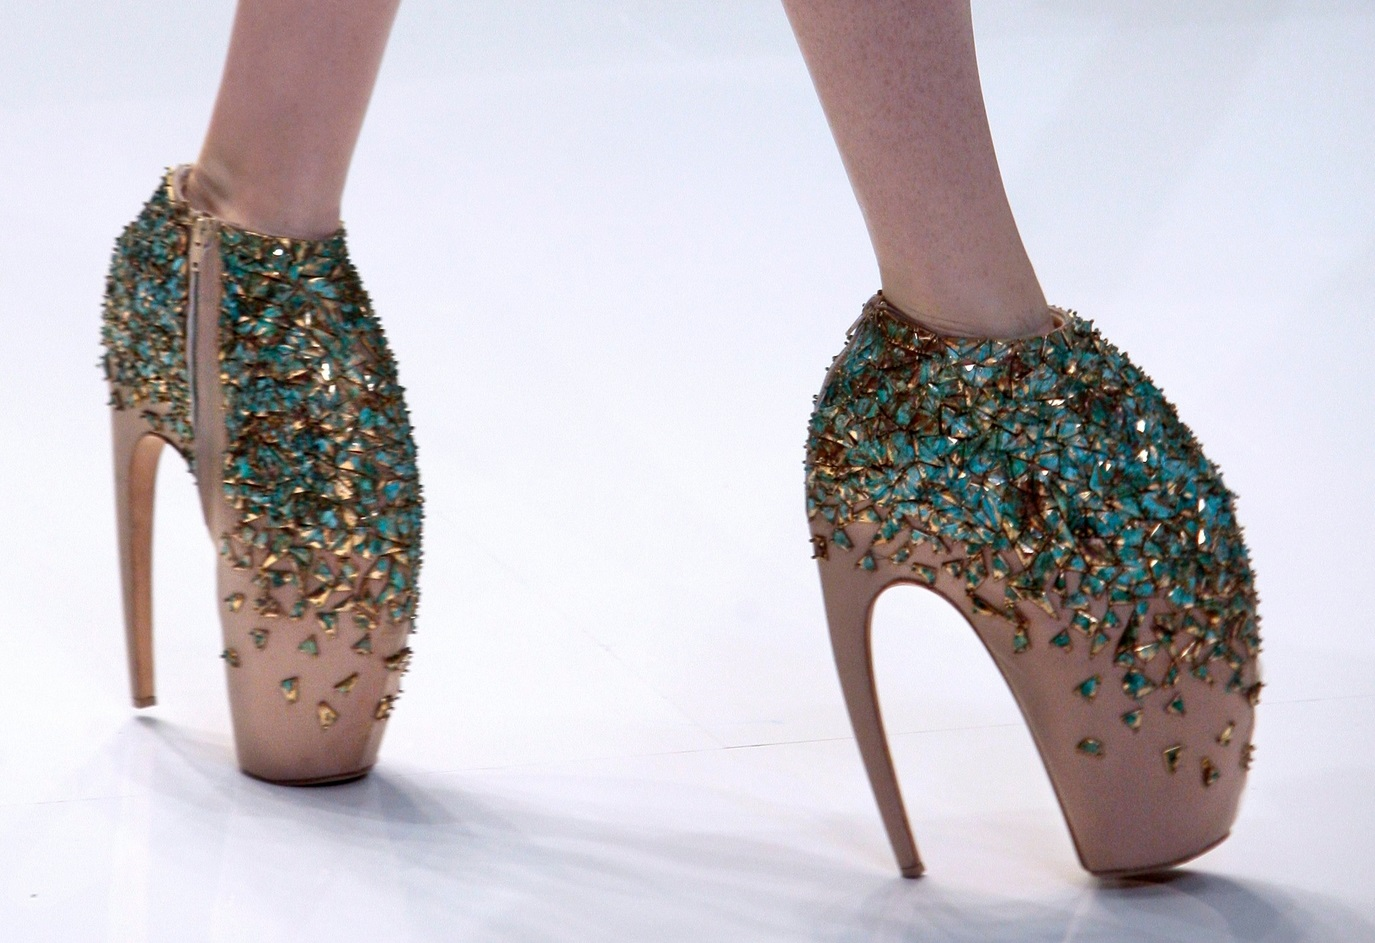 15 Of The Most Jaw-Droppingly Insane Shoes Ever Made 7